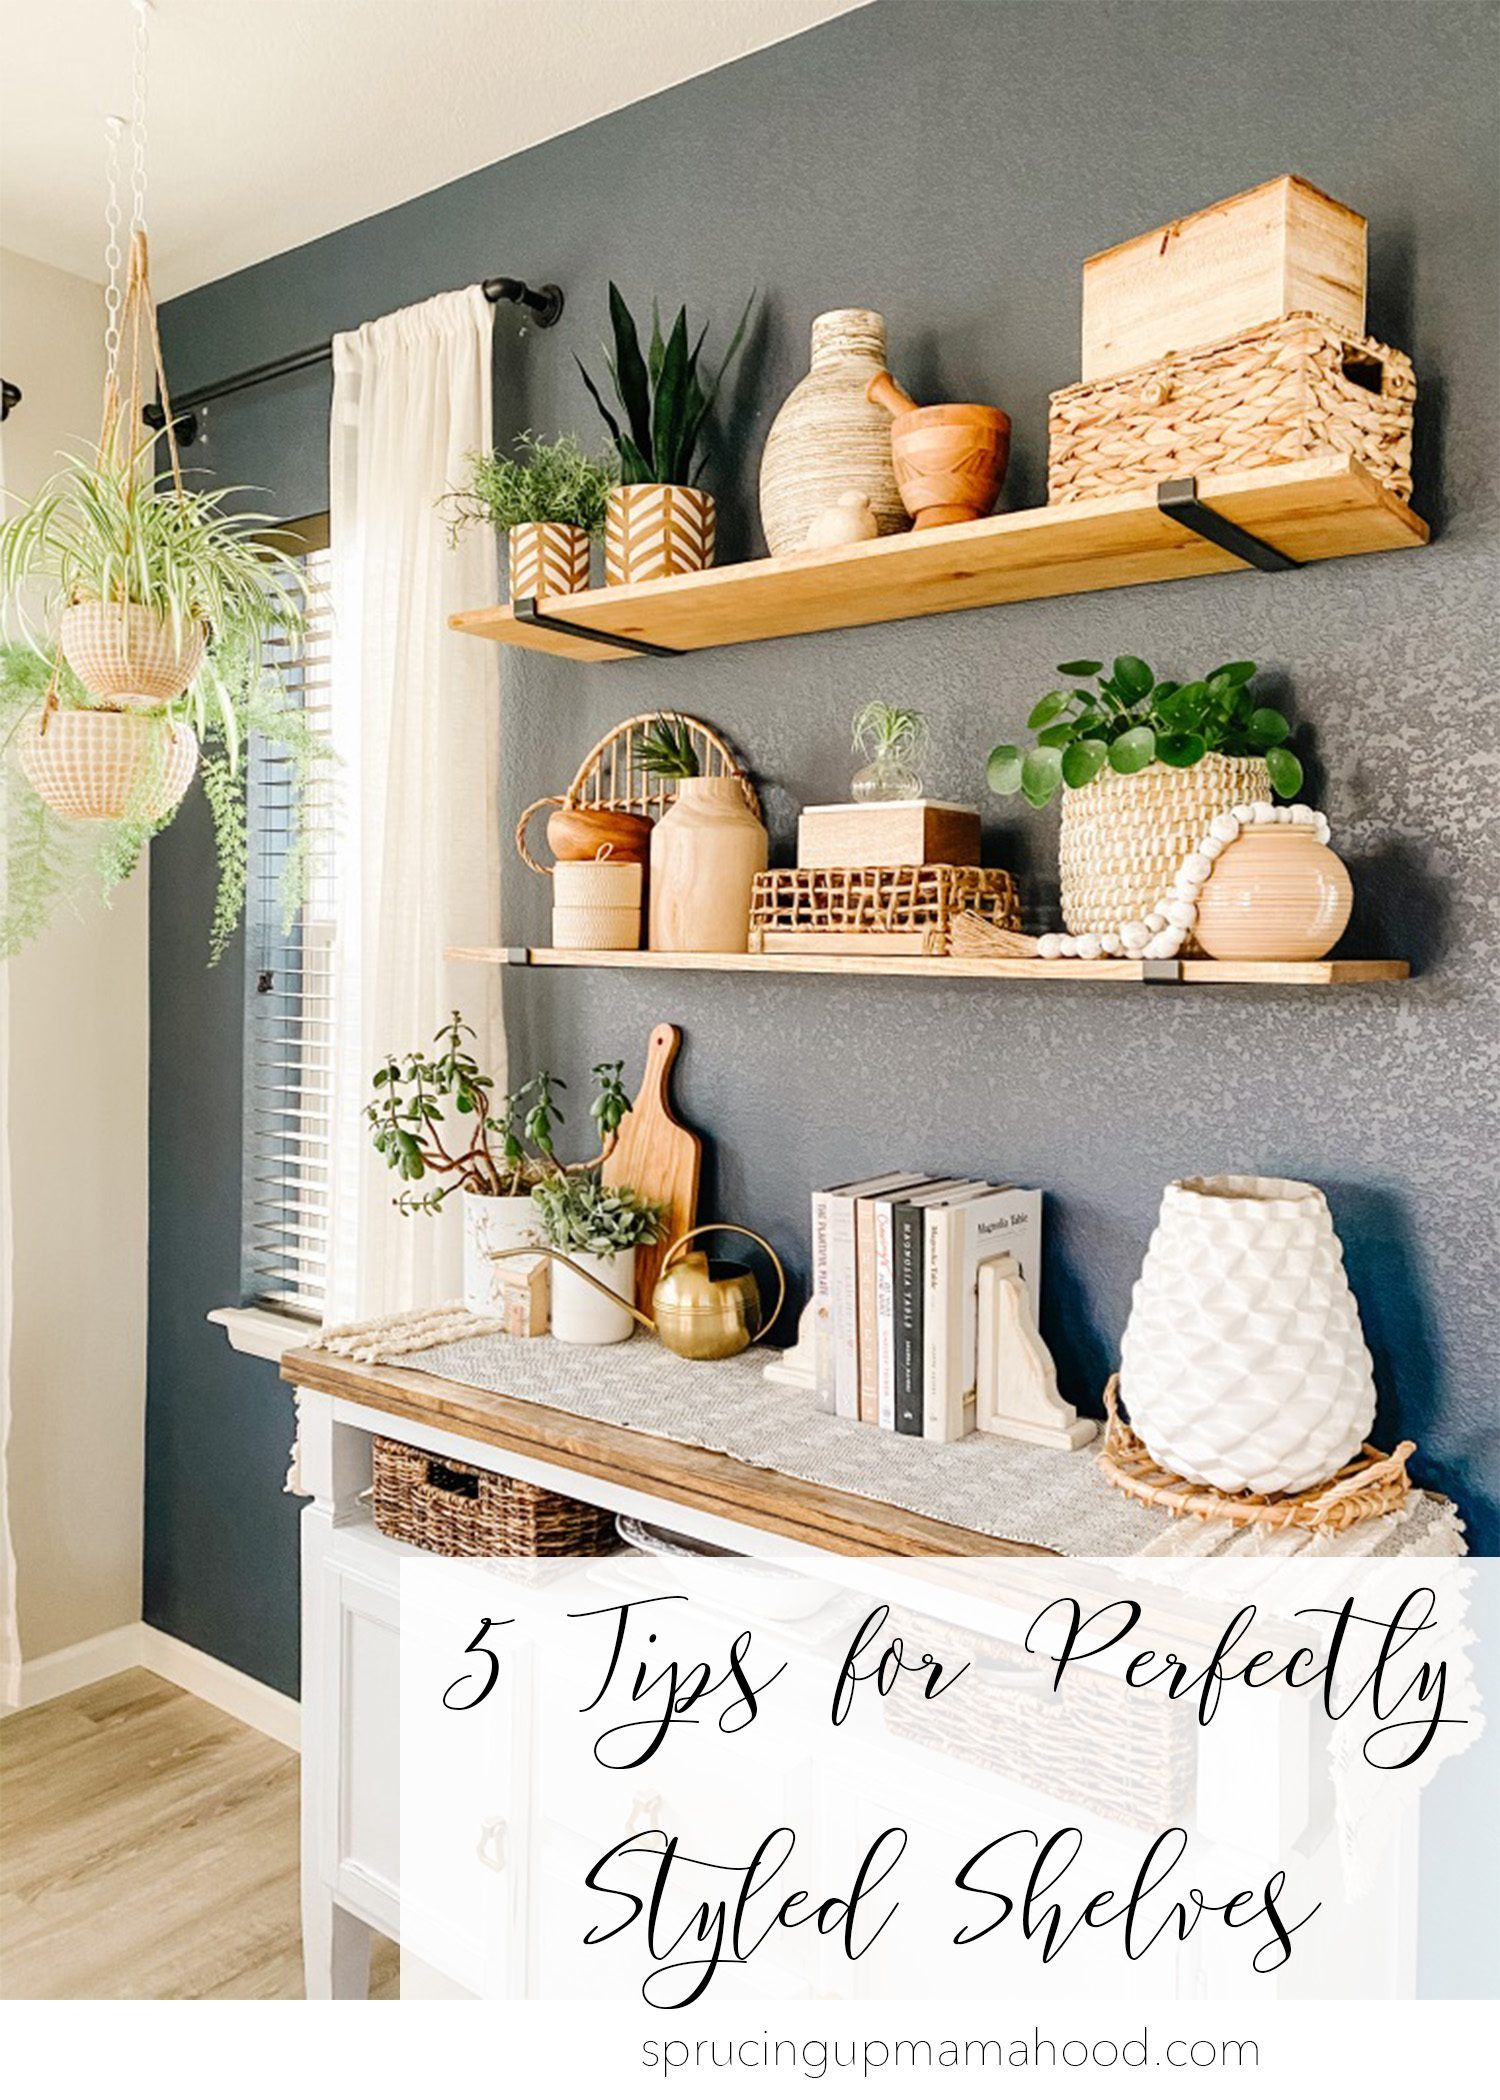 Do you struggle with decorating and styling your built-in shelves or bookcases? Click the link to read my top five tips for perfectly styled shelves! My tutorial and tricks on how to style your shelves should help you with any shelf or tabletop decor and help you create the perfect shelfie!  #shelfstyling #howtostyle #shelfdecor #tabledecor #shelfaccessories #howtodecorate #shelfie